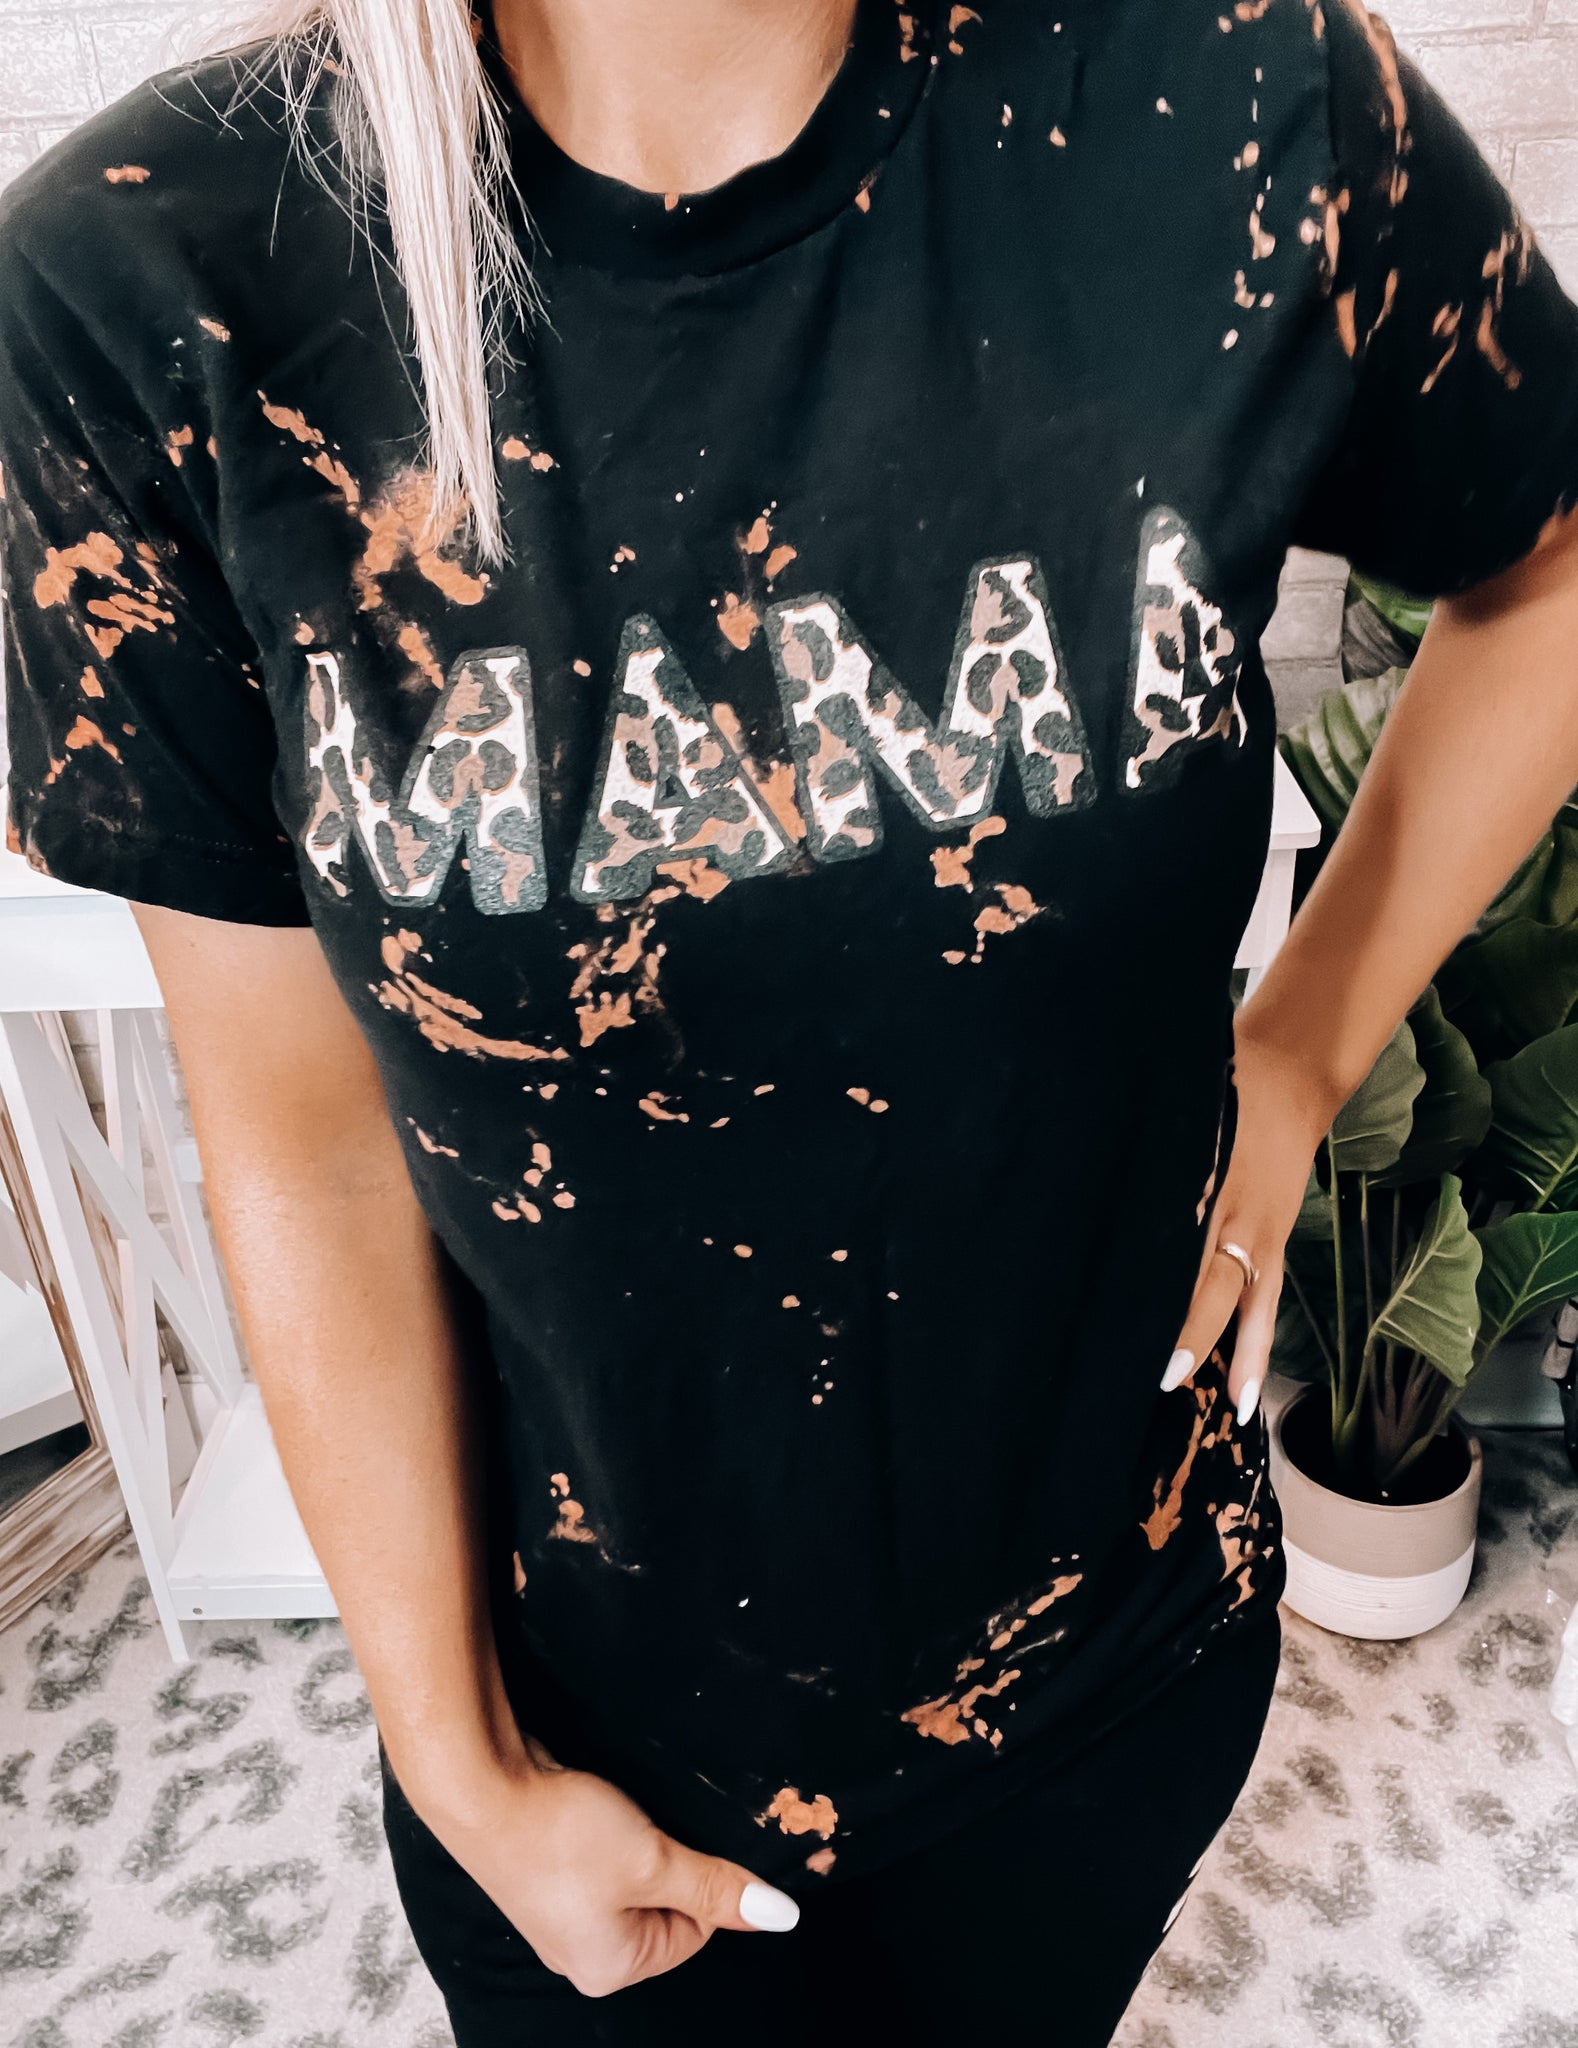 MAMA Bleached Tee - This & That Boutique Shop